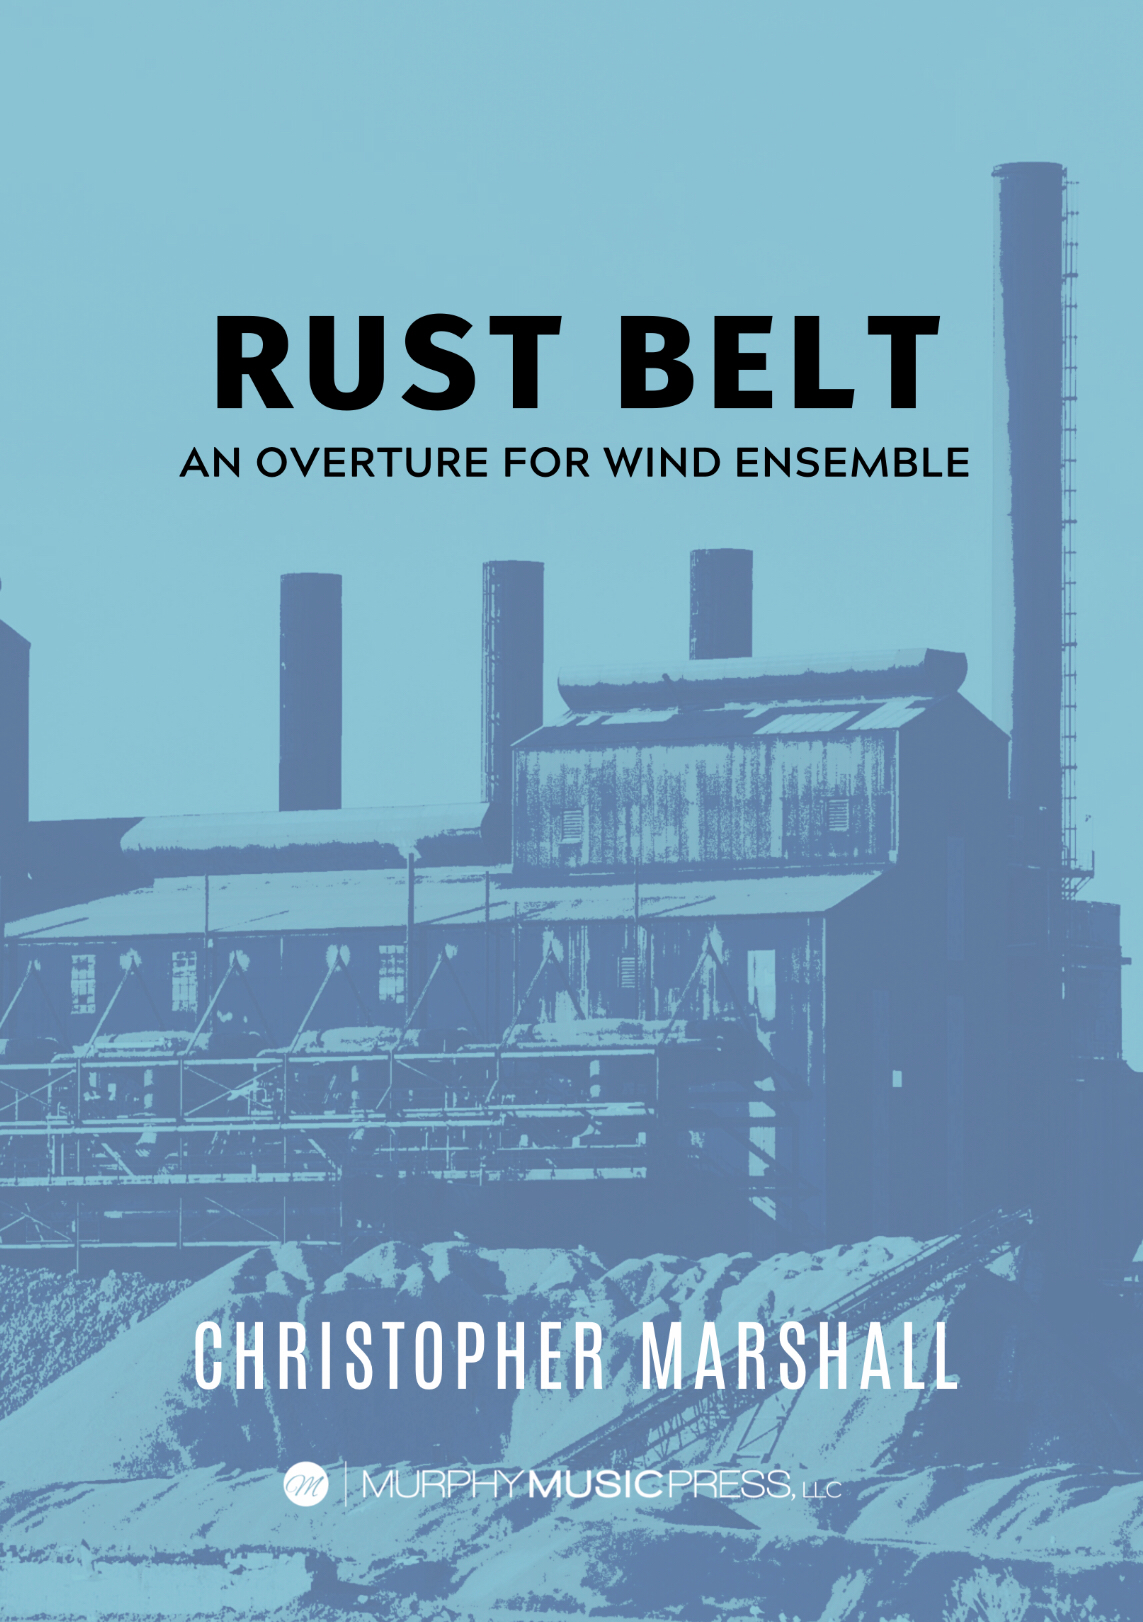 Rust Belt by Christopher Marshall